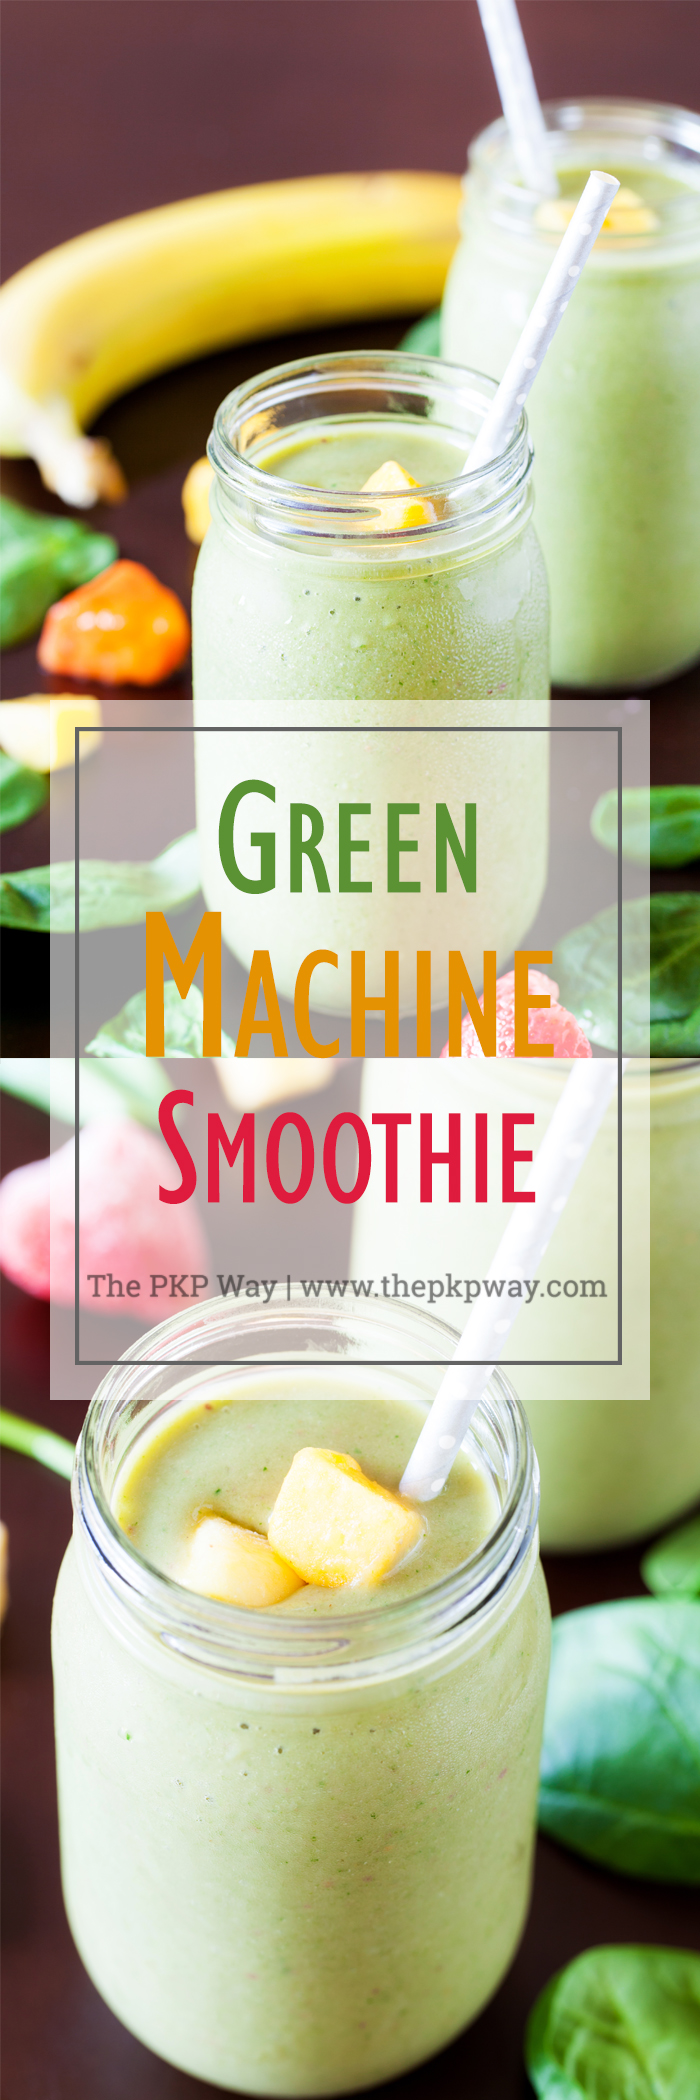 best machine for green smoothies